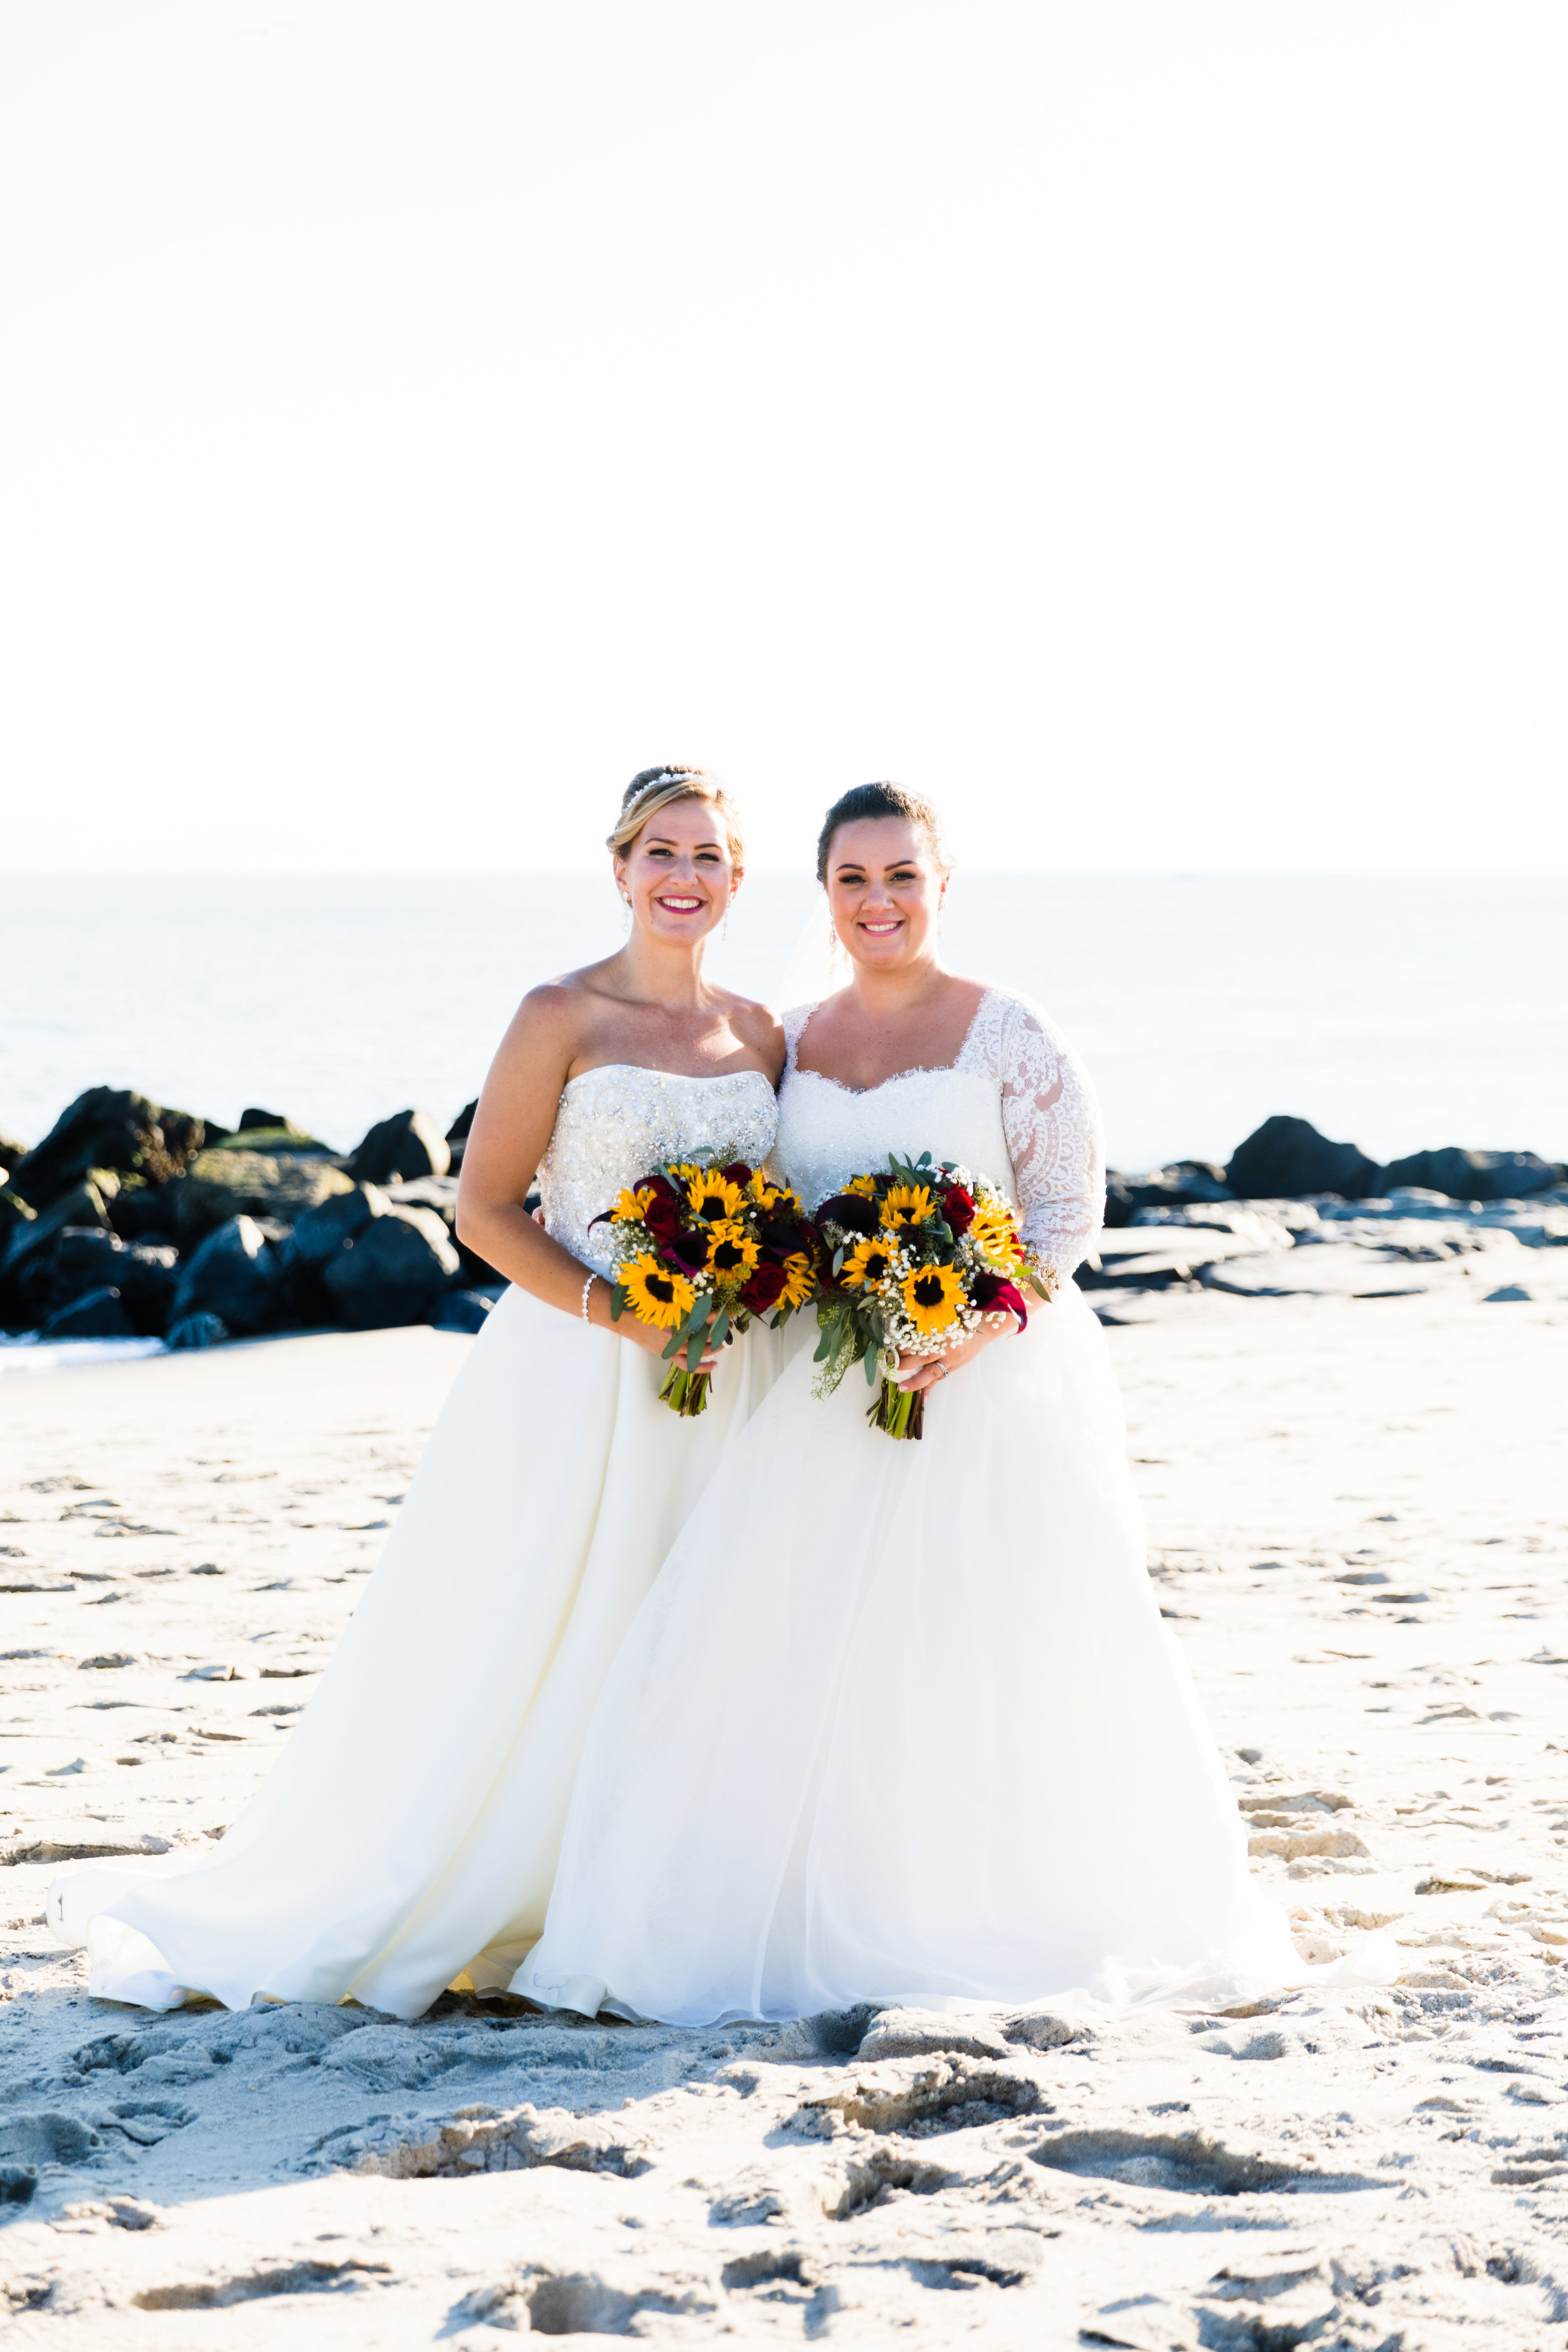 Kim and Dominique  - Cape May Convention Hall Wedding - 127.jpg